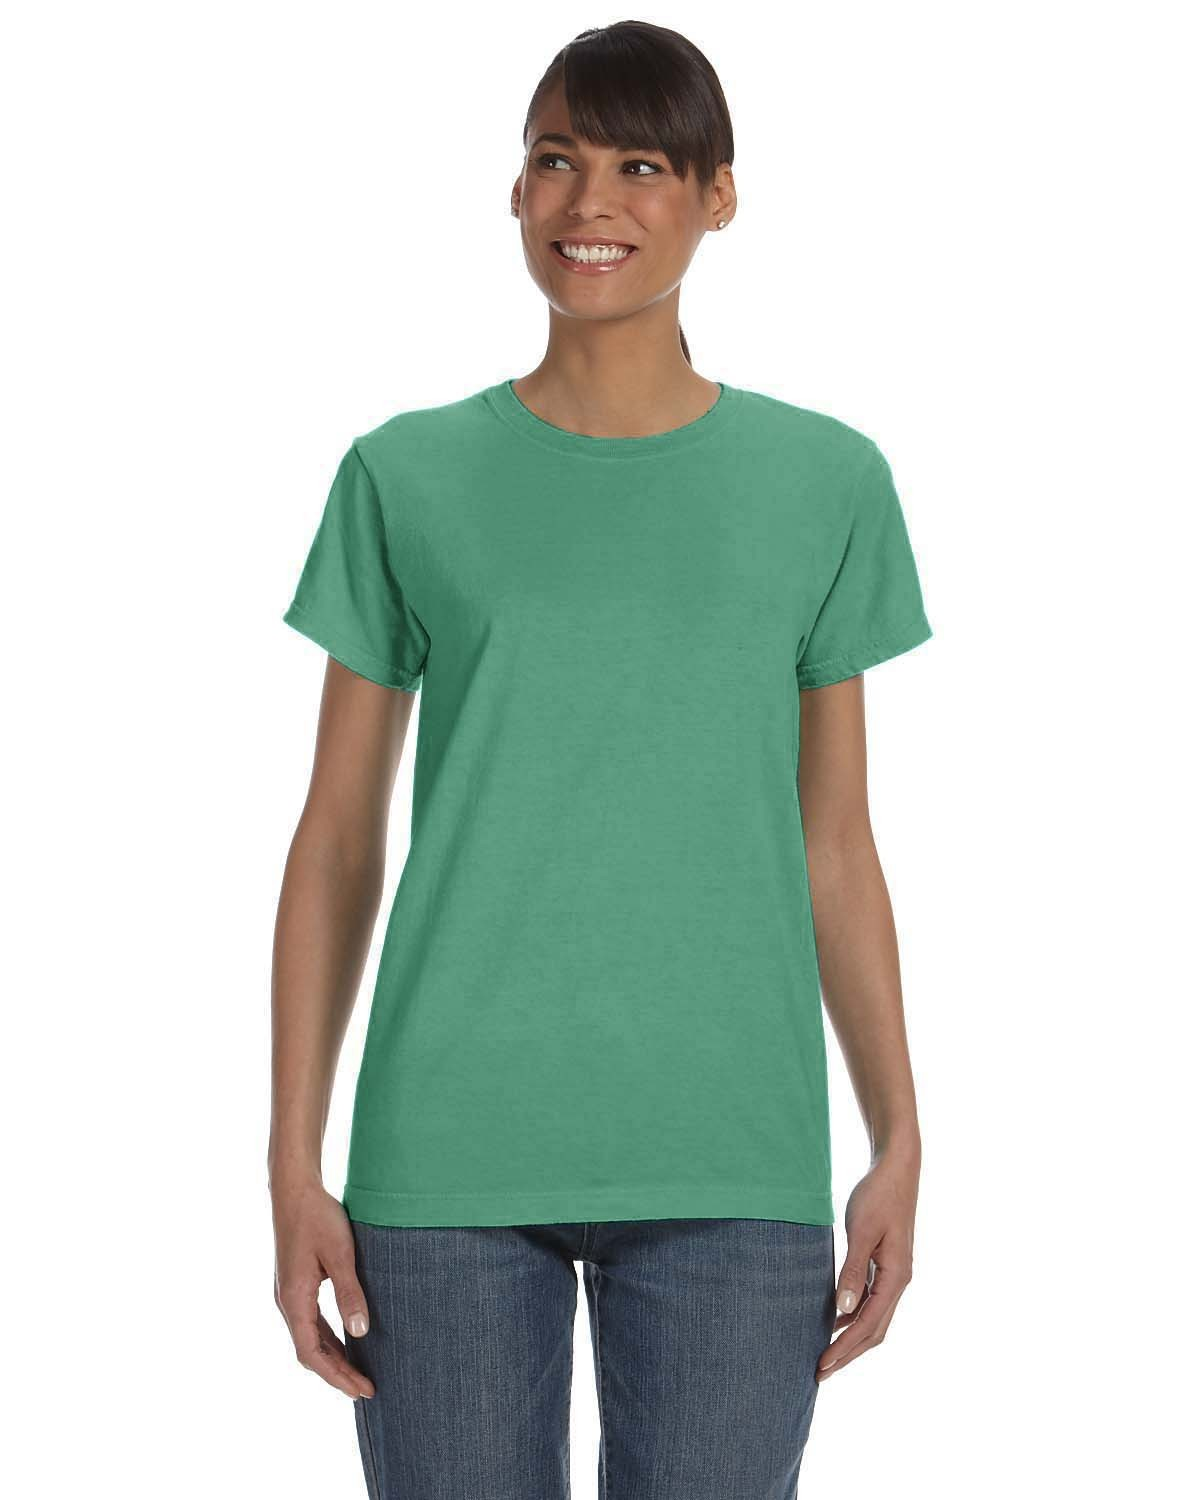 C3333 Comfort Colors ISLAND GREEN